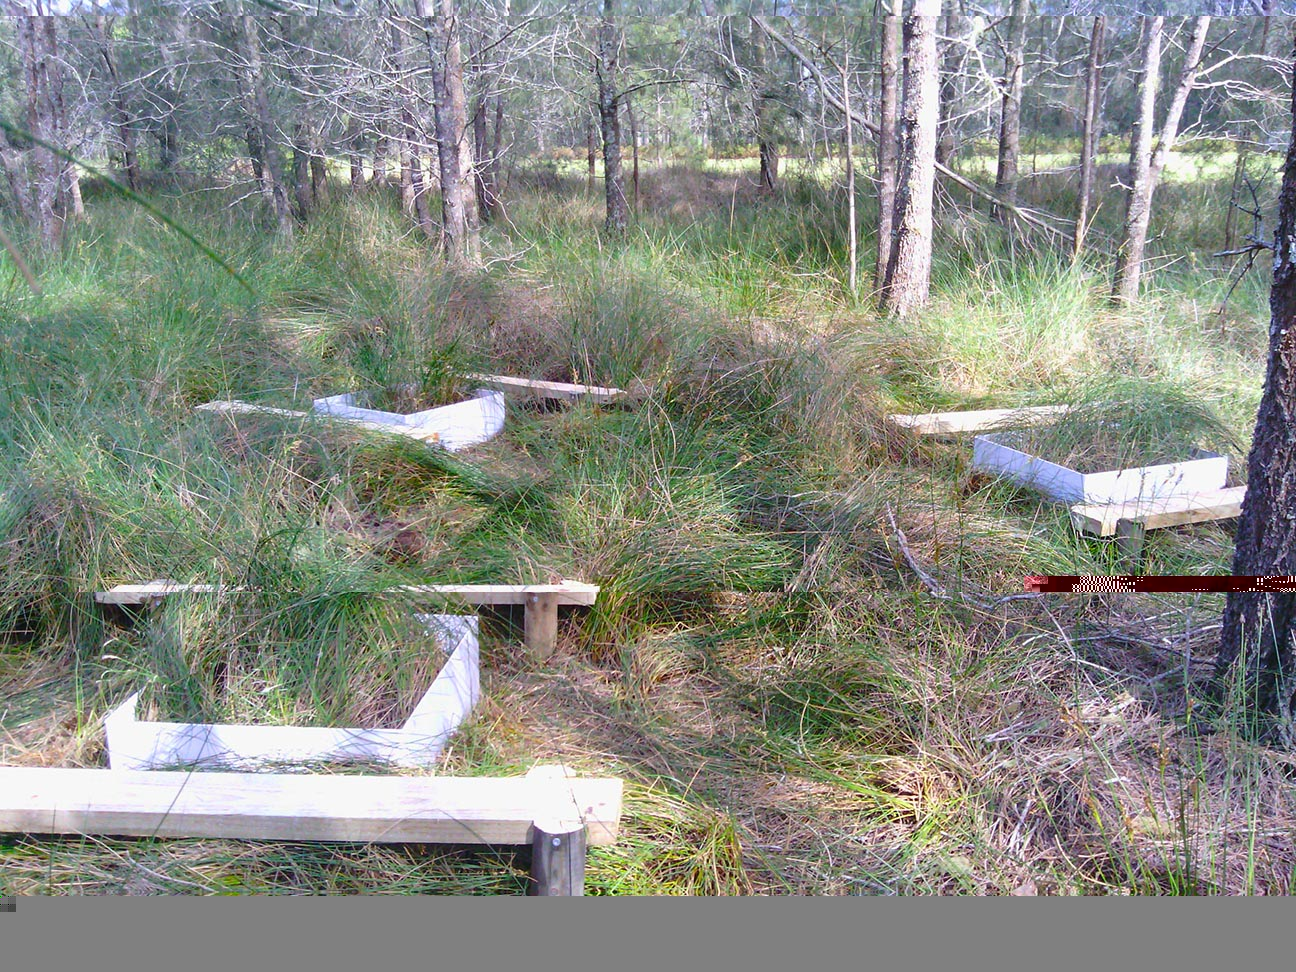 Future study sites resembling picnic areas, ready to quantify seasonal vegetative methane emissions